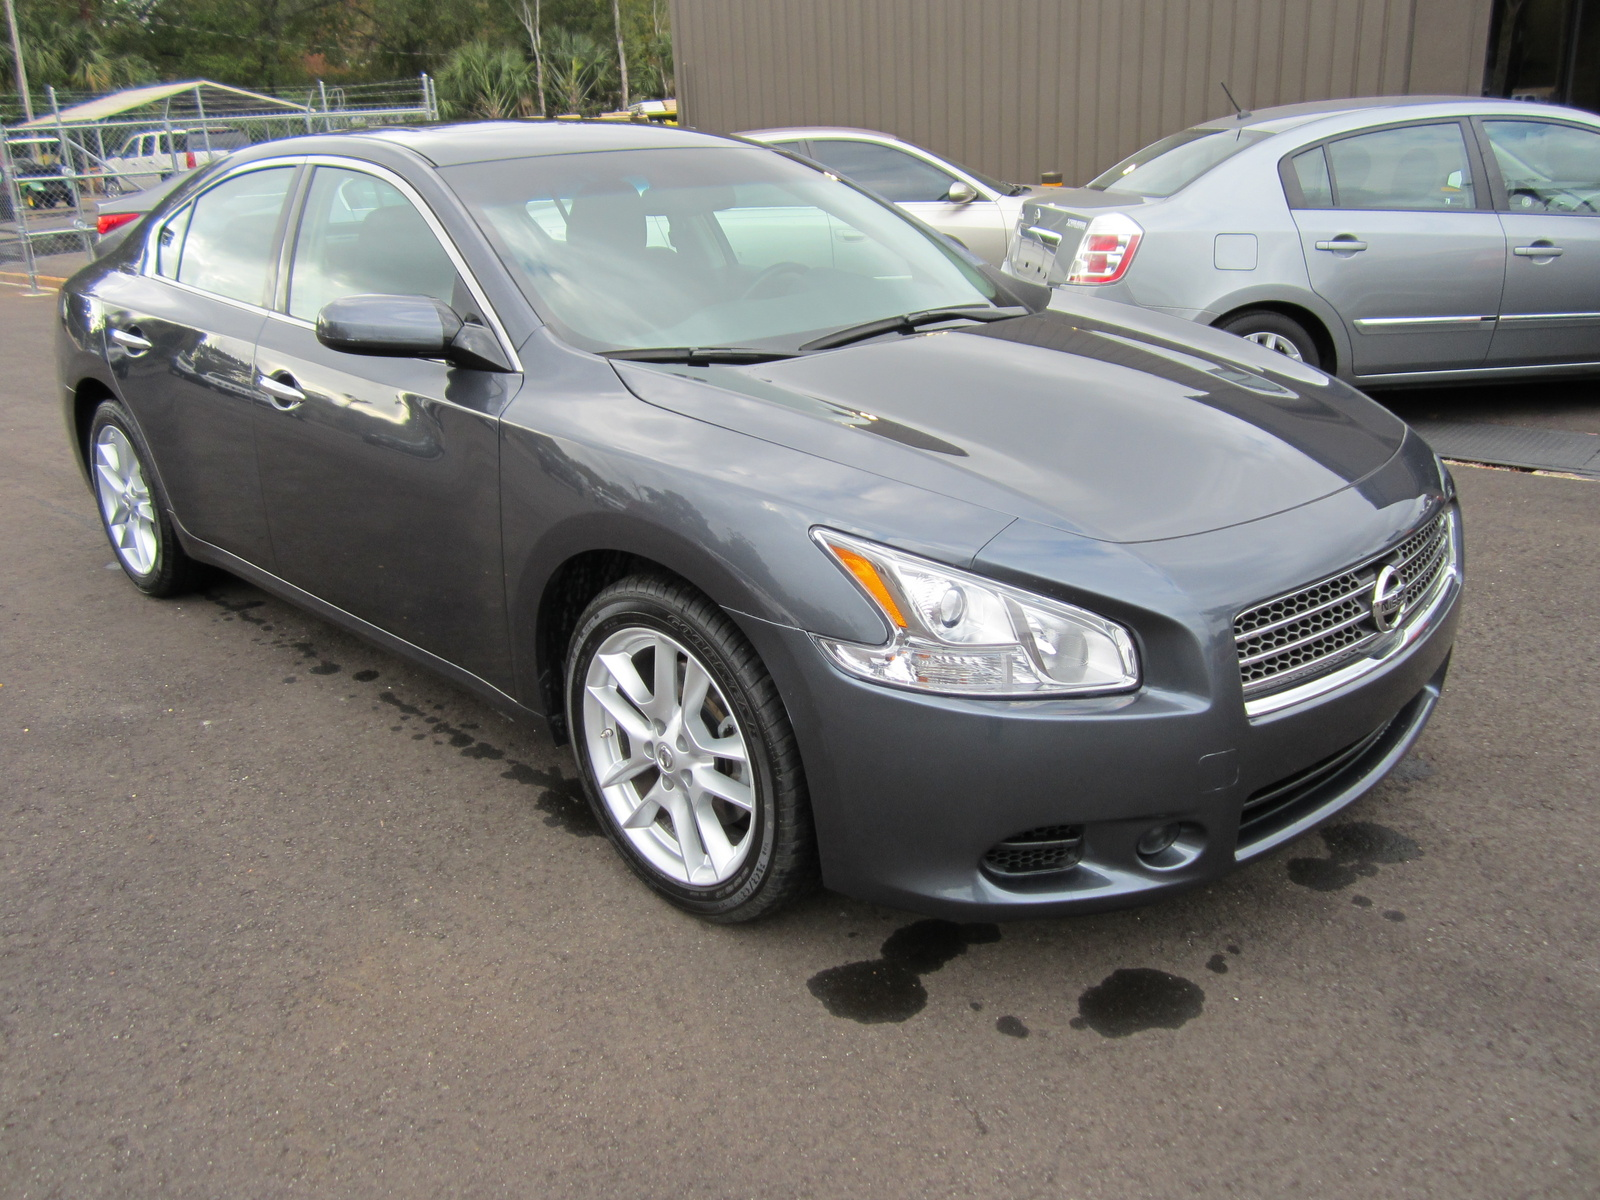 Used Nissan Altima Coupe 2008 2010 Nissan Maxima - Exterior Pictures - CarGurus